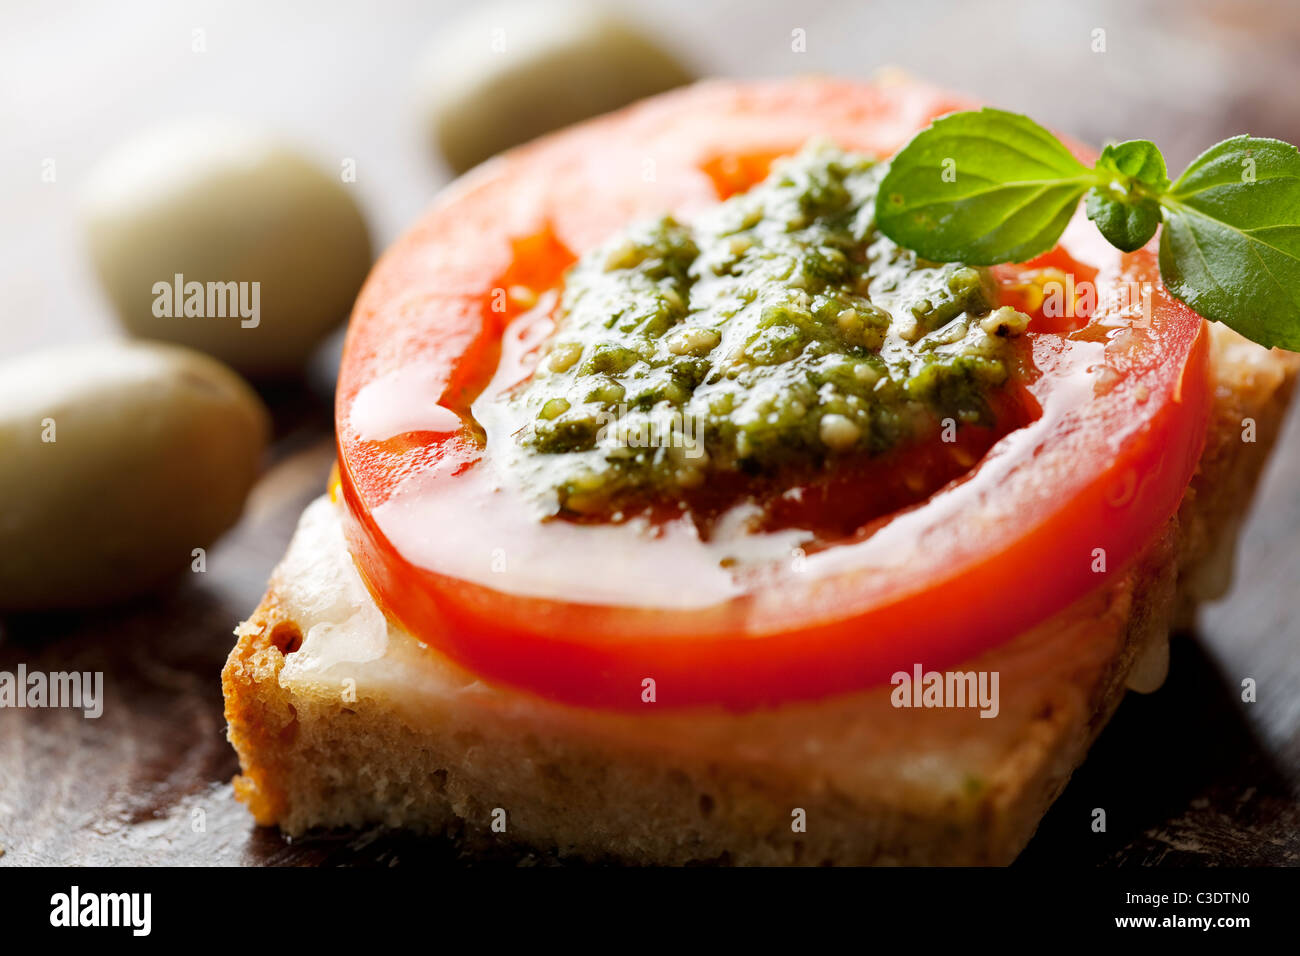 La bruschetta Photo Stock